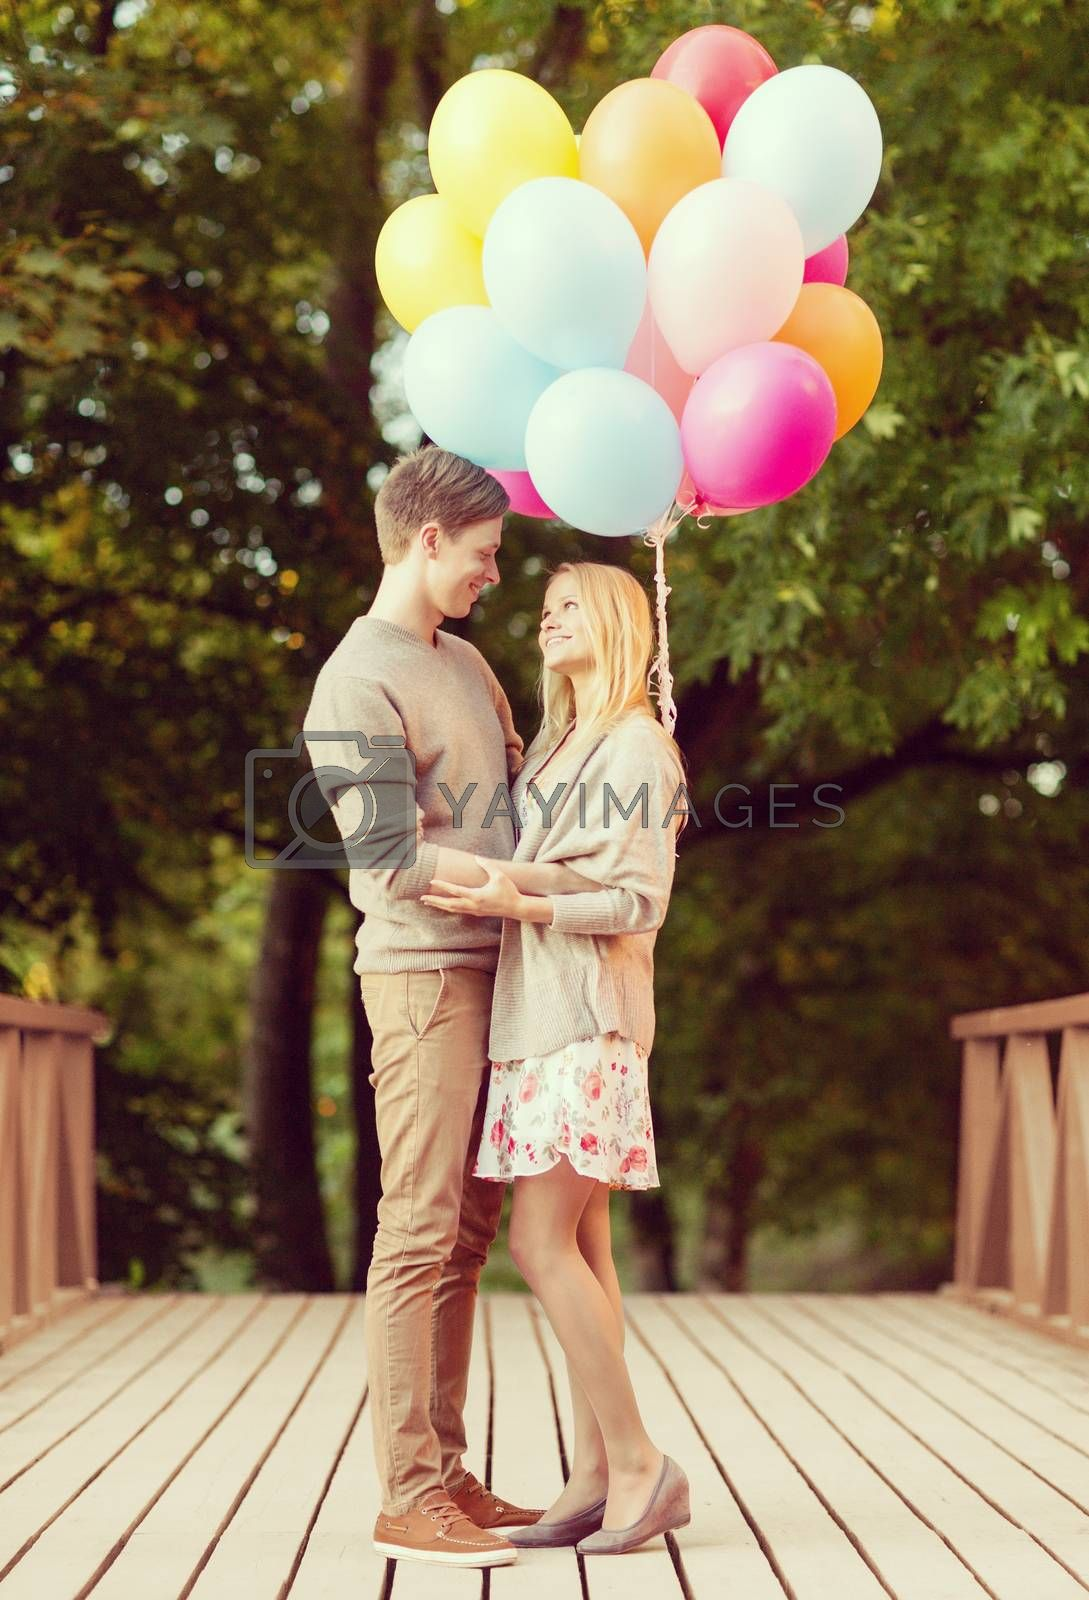 summer holidays, celebration and dating concept - couple with colorful balloons in the park